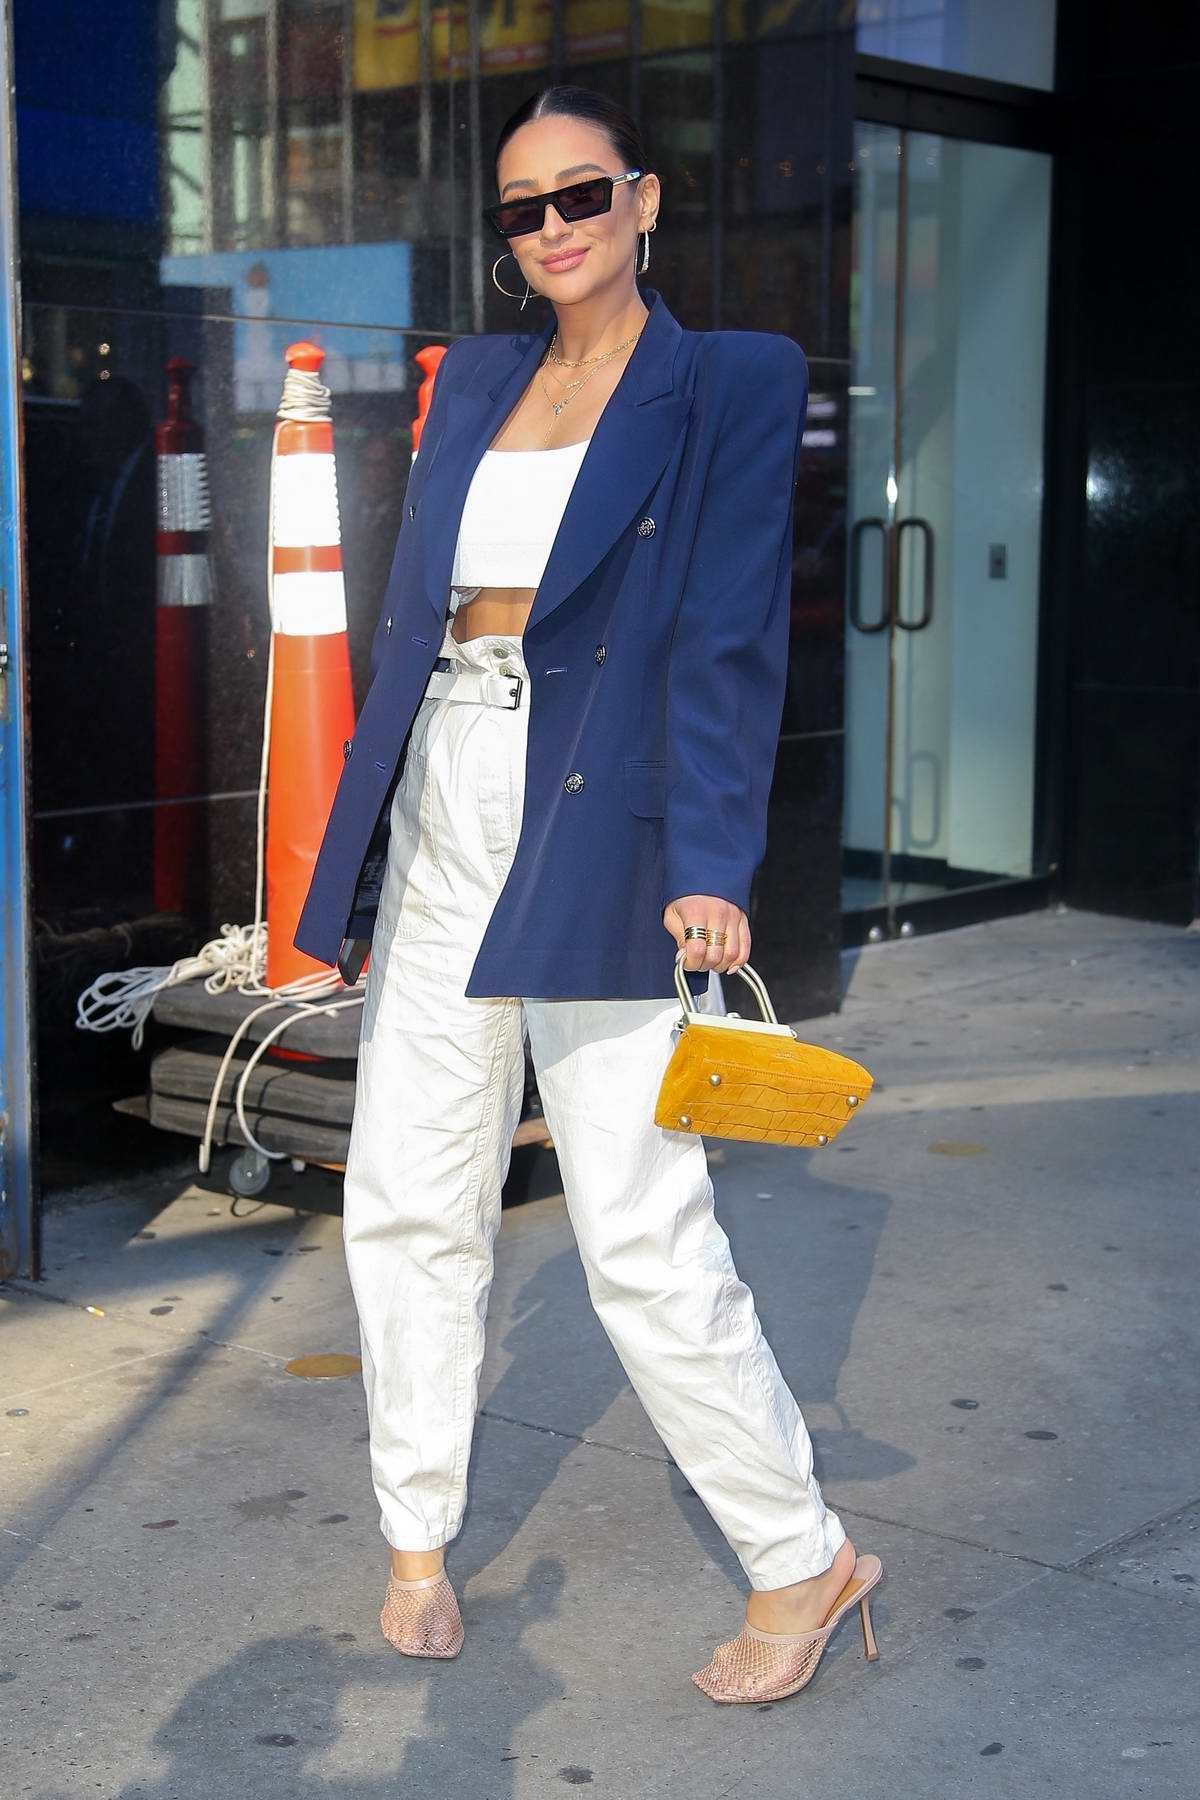 Shay Mitchell looks stylish in a blue blazer while visiting 'Strahan, Sara and Keke' in New York City